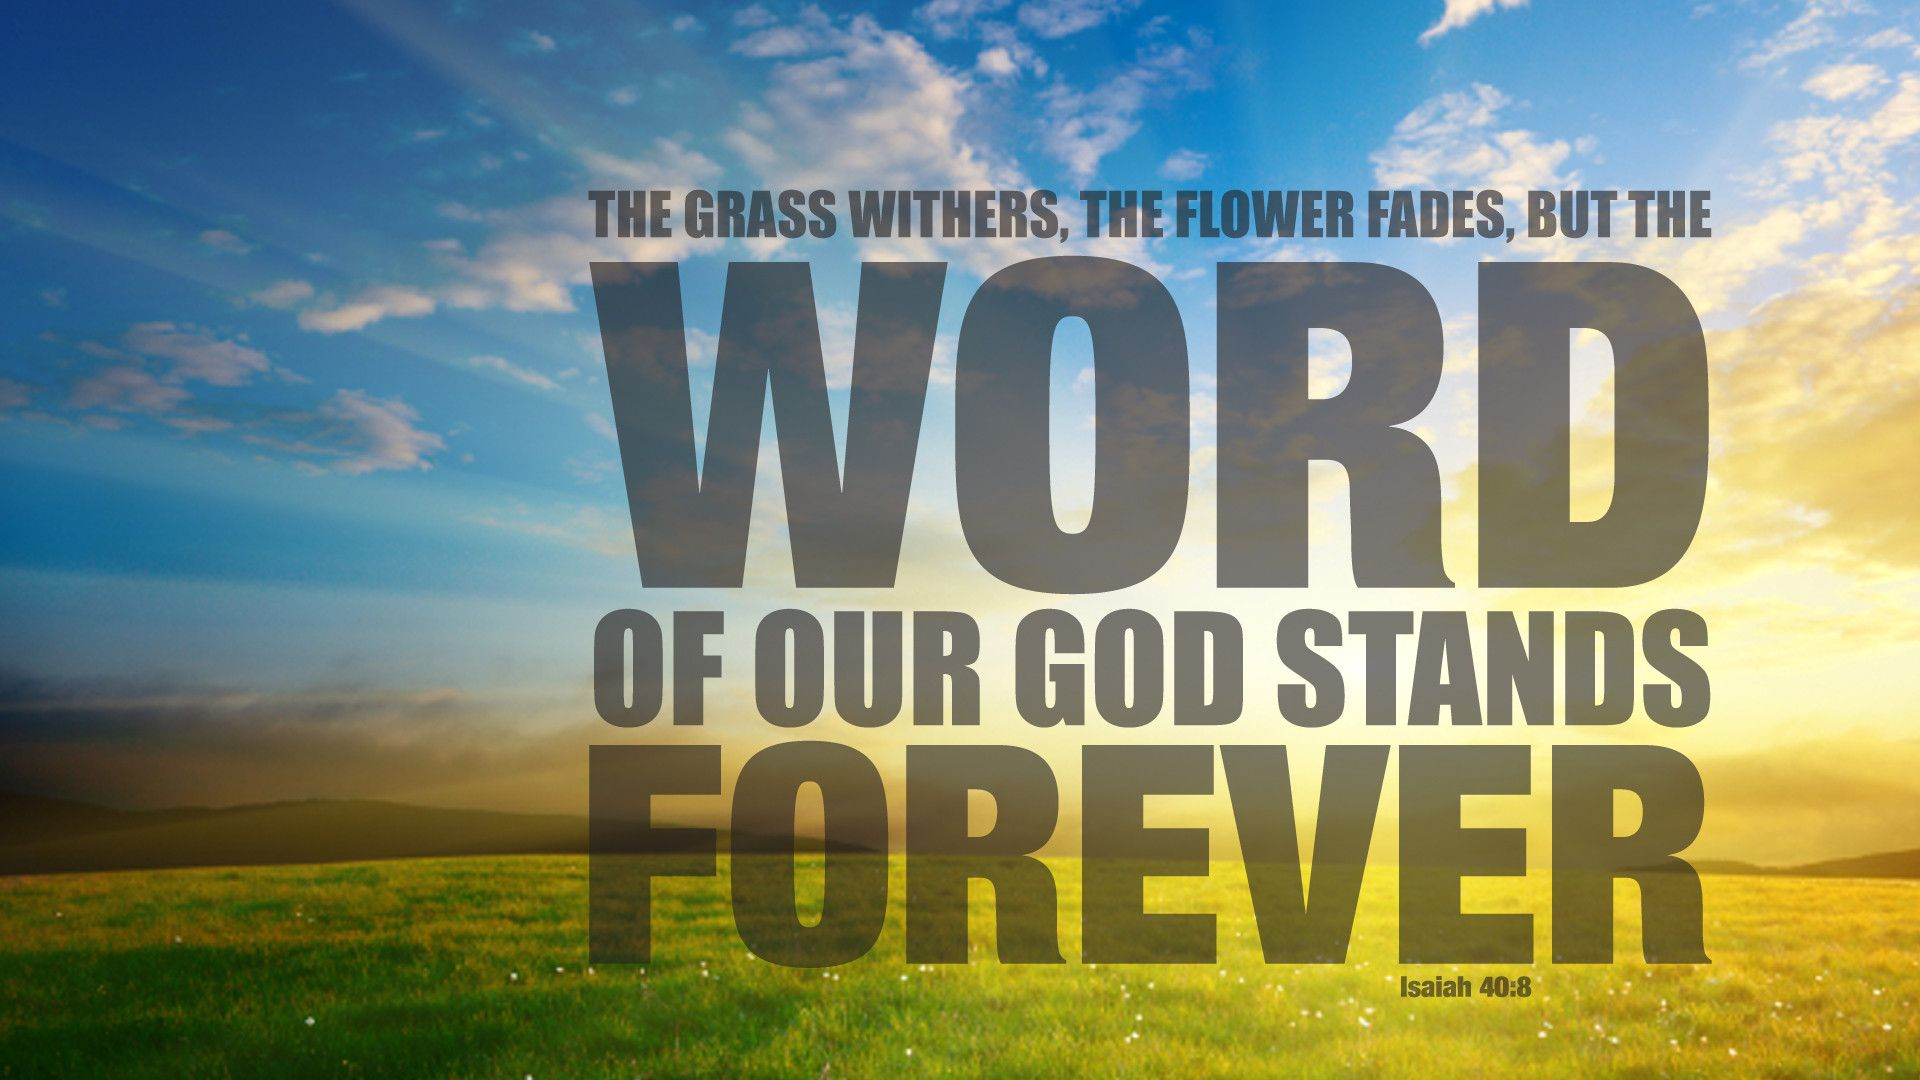 Bible Verse Wallpapers For Mobile Large HD Wallpaper Database 1920x1080